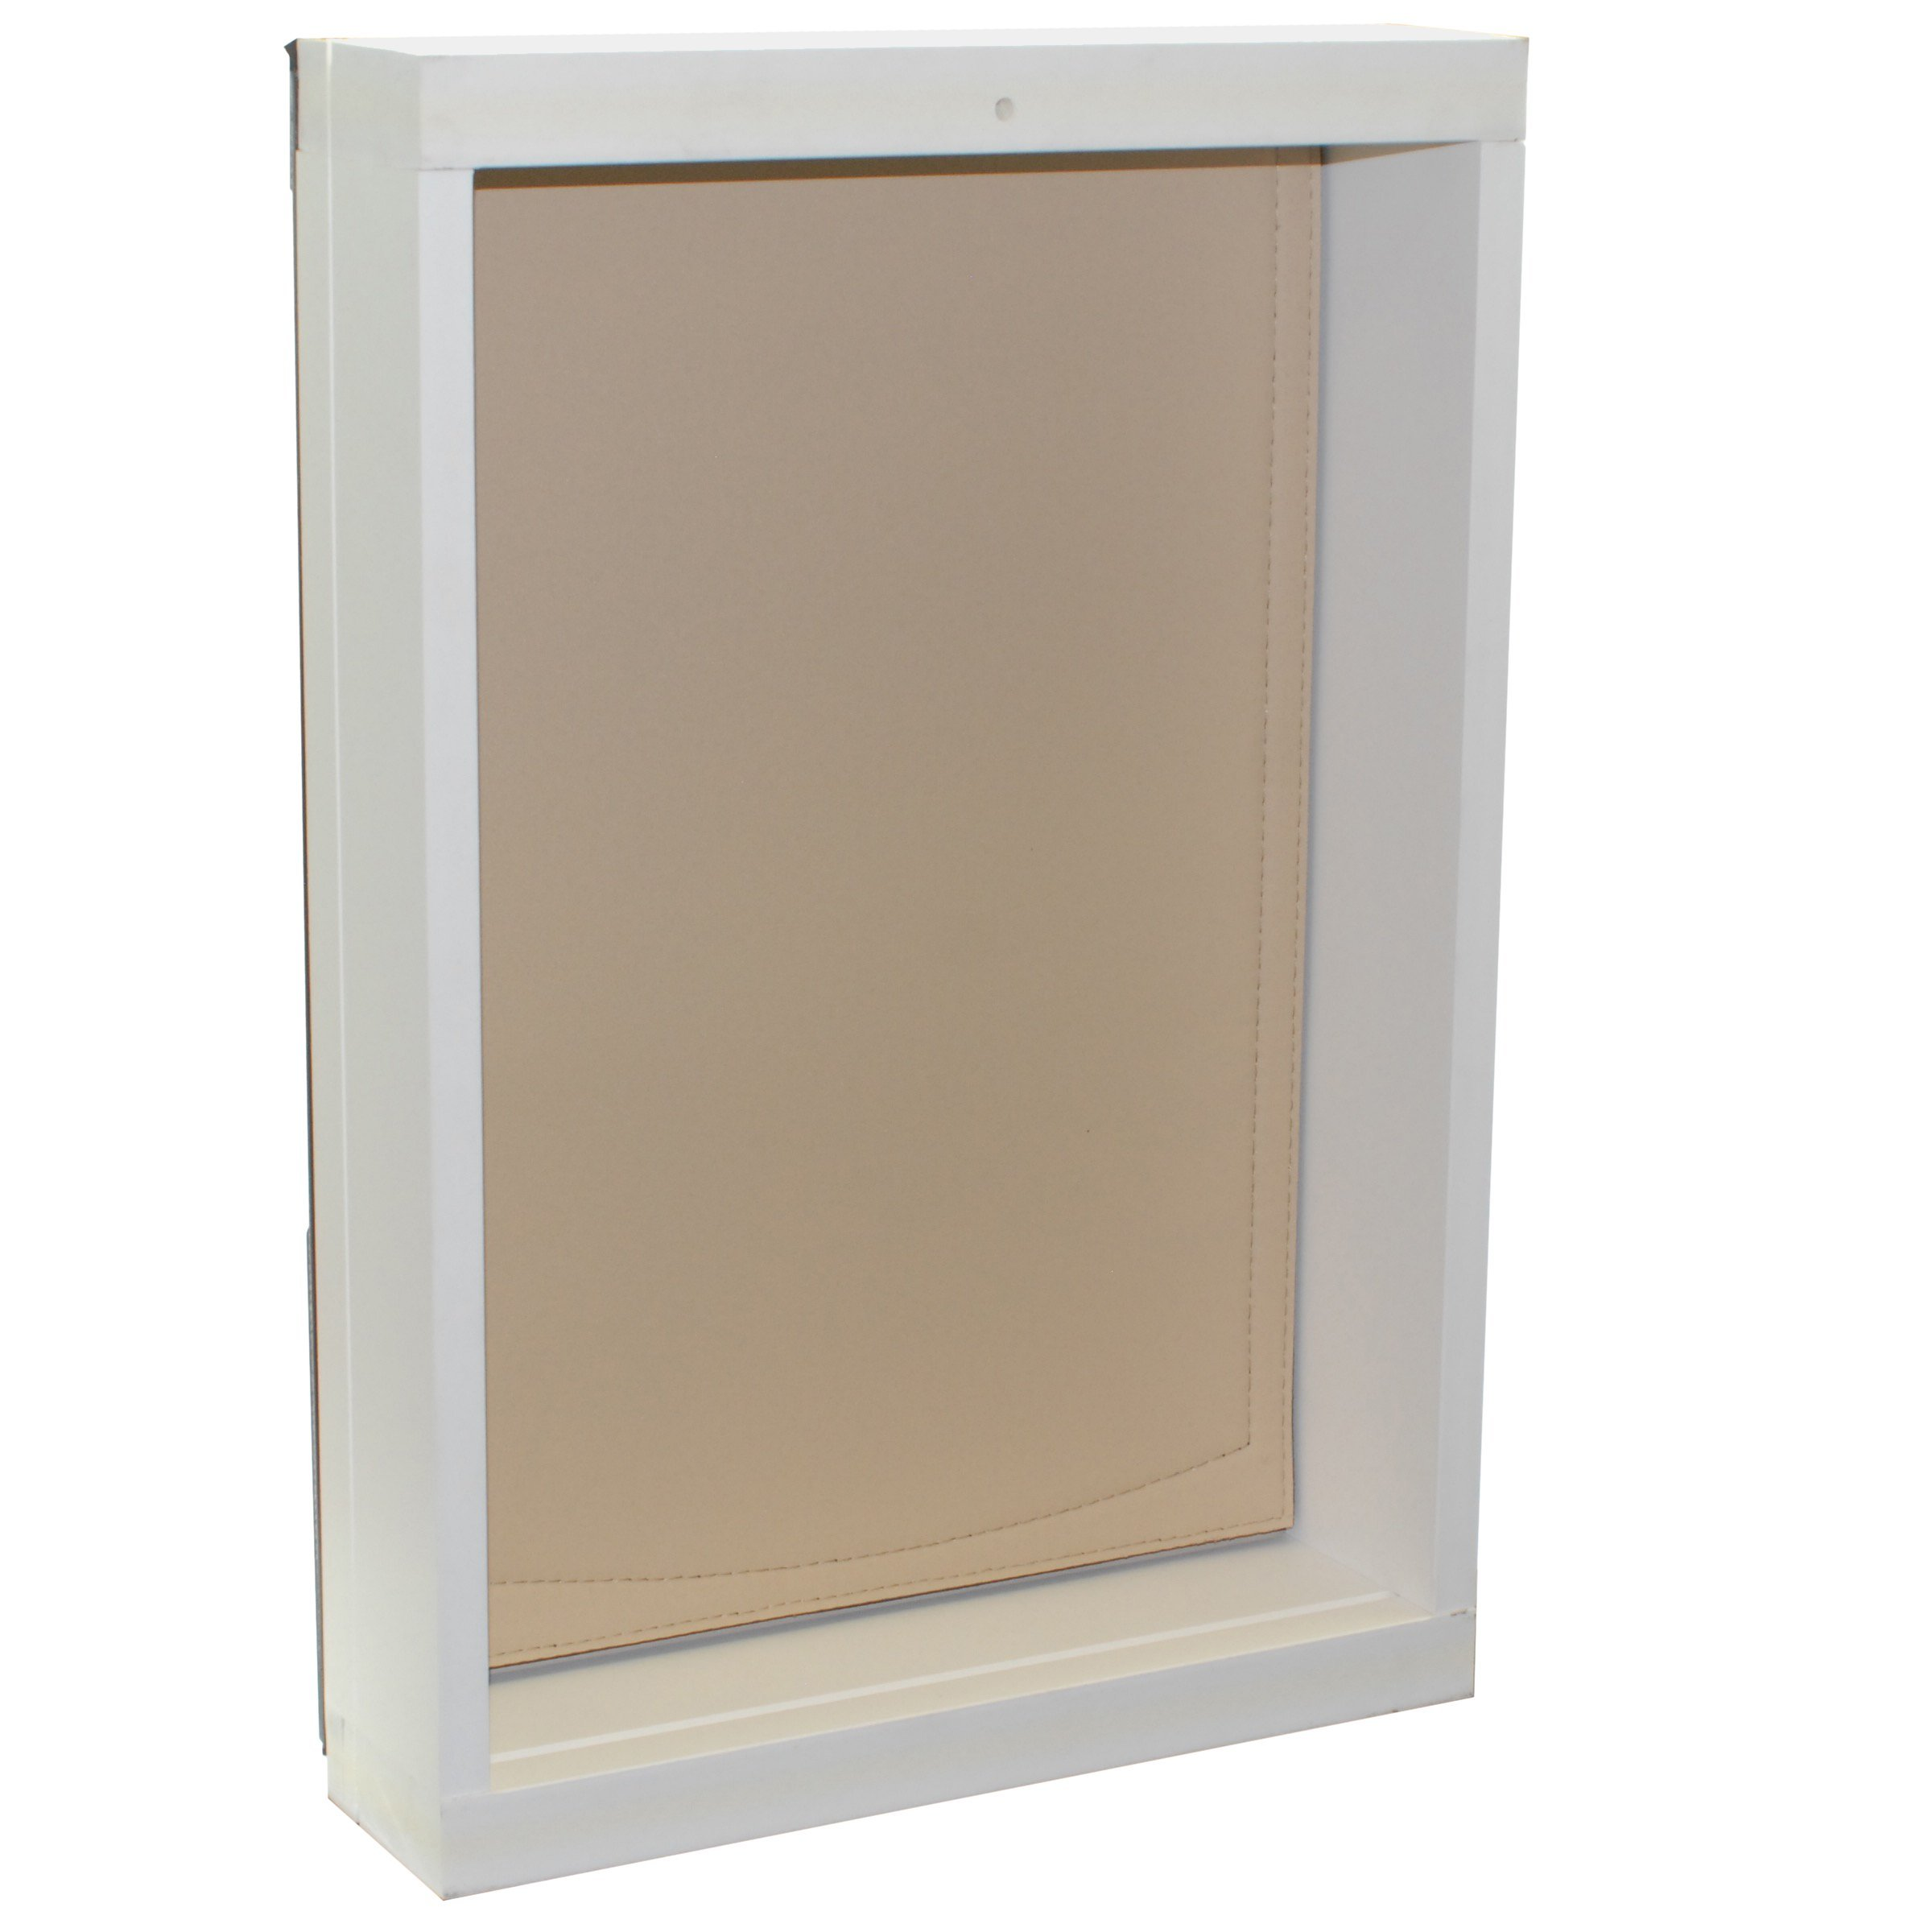 Freedom Pet Pass Wall-Mounted Energy-Efficient, Extreme Weather Dog Door with Insulated Flap - L